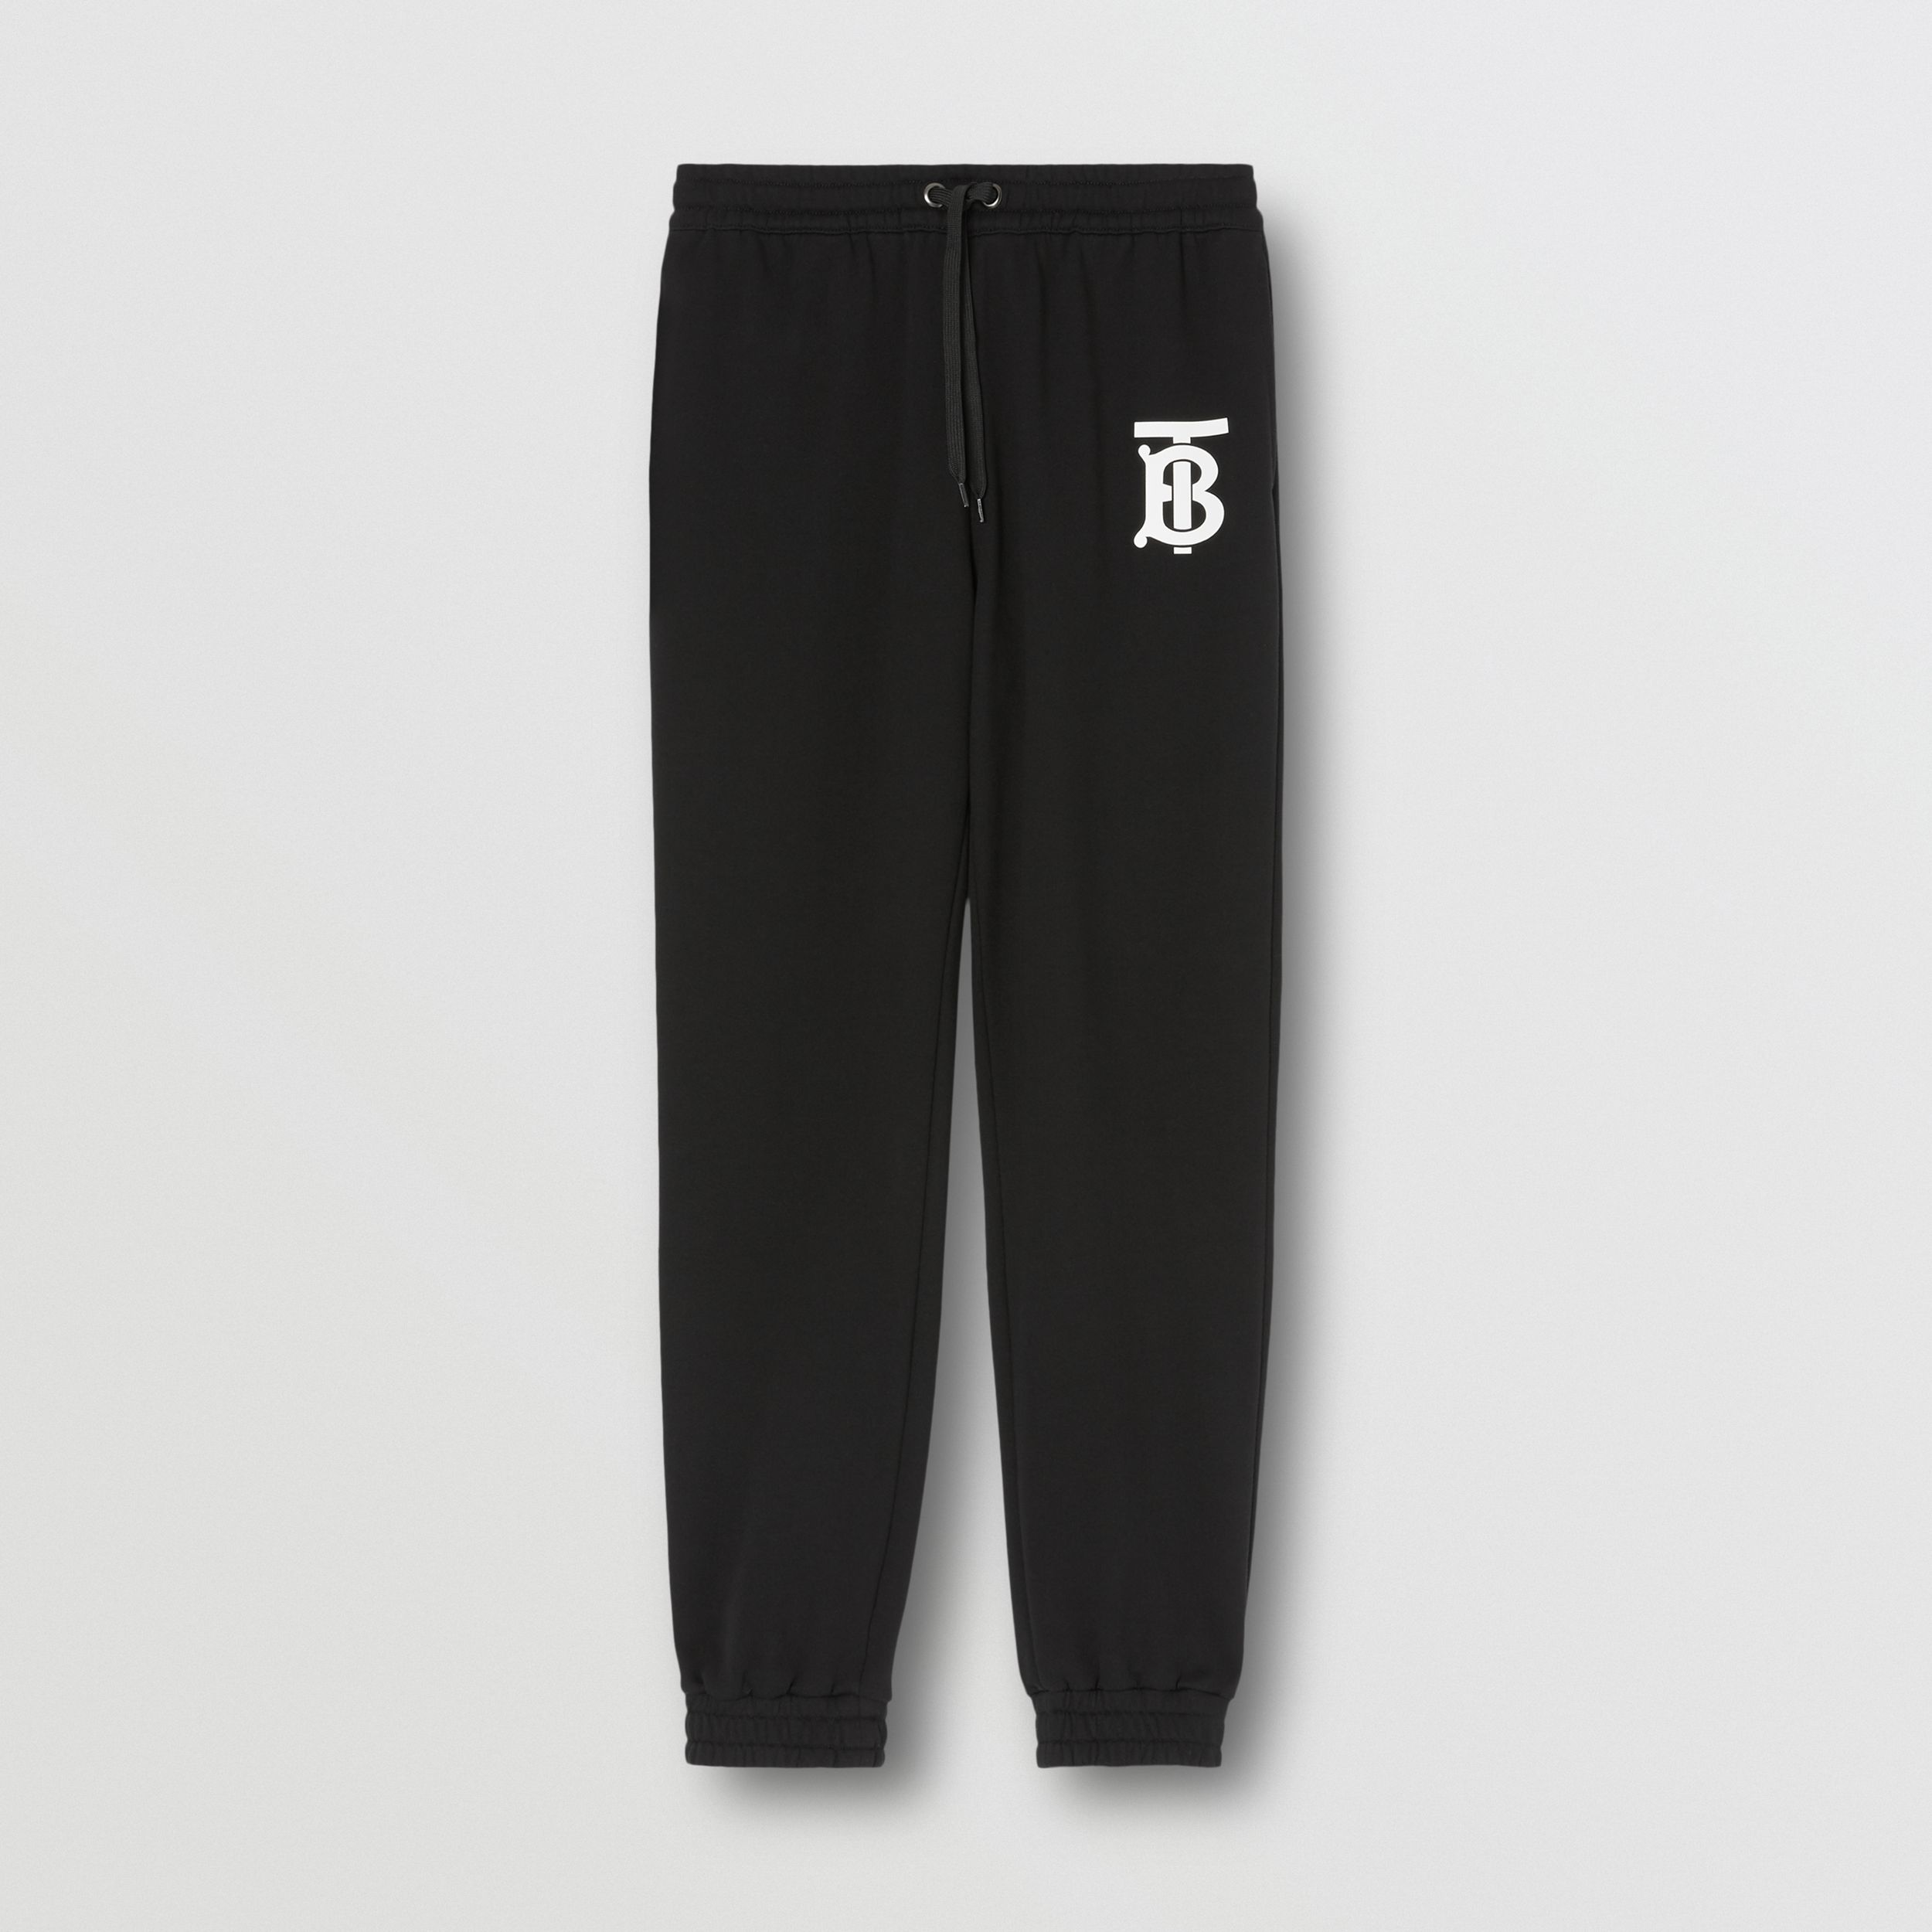 Monogram Motif Cotton Jogging Pants in Black - Men | Burberry Australia - 4